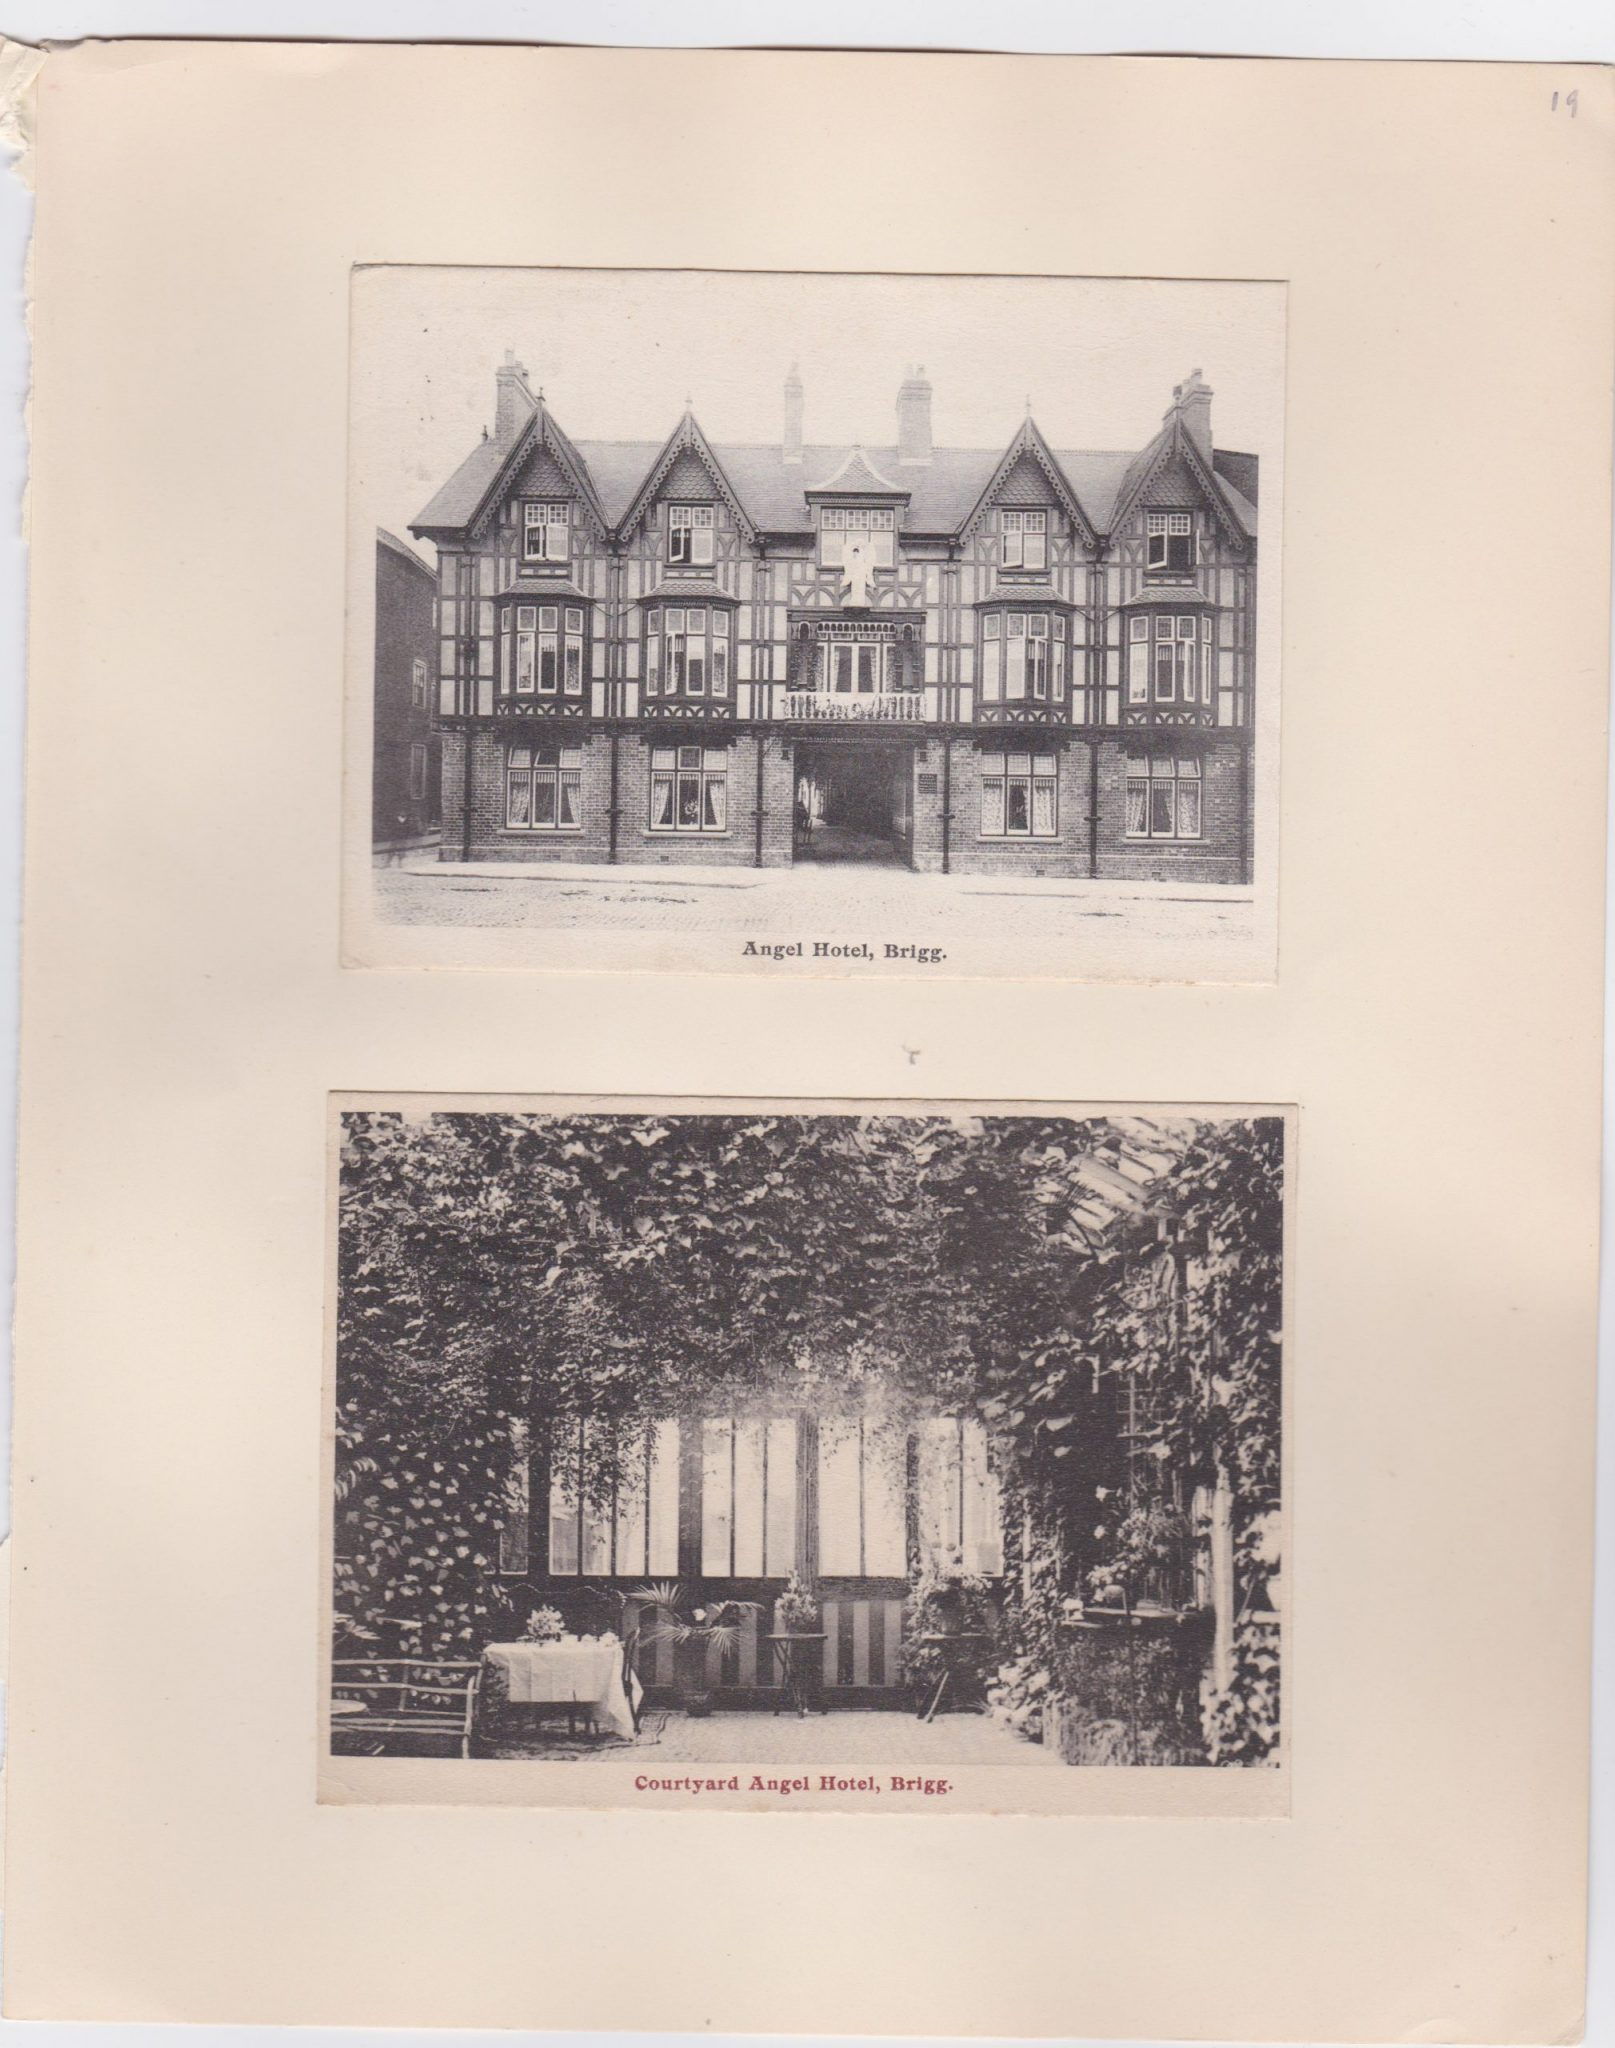 Two old postcards showing the Angel Hotel at Brigg